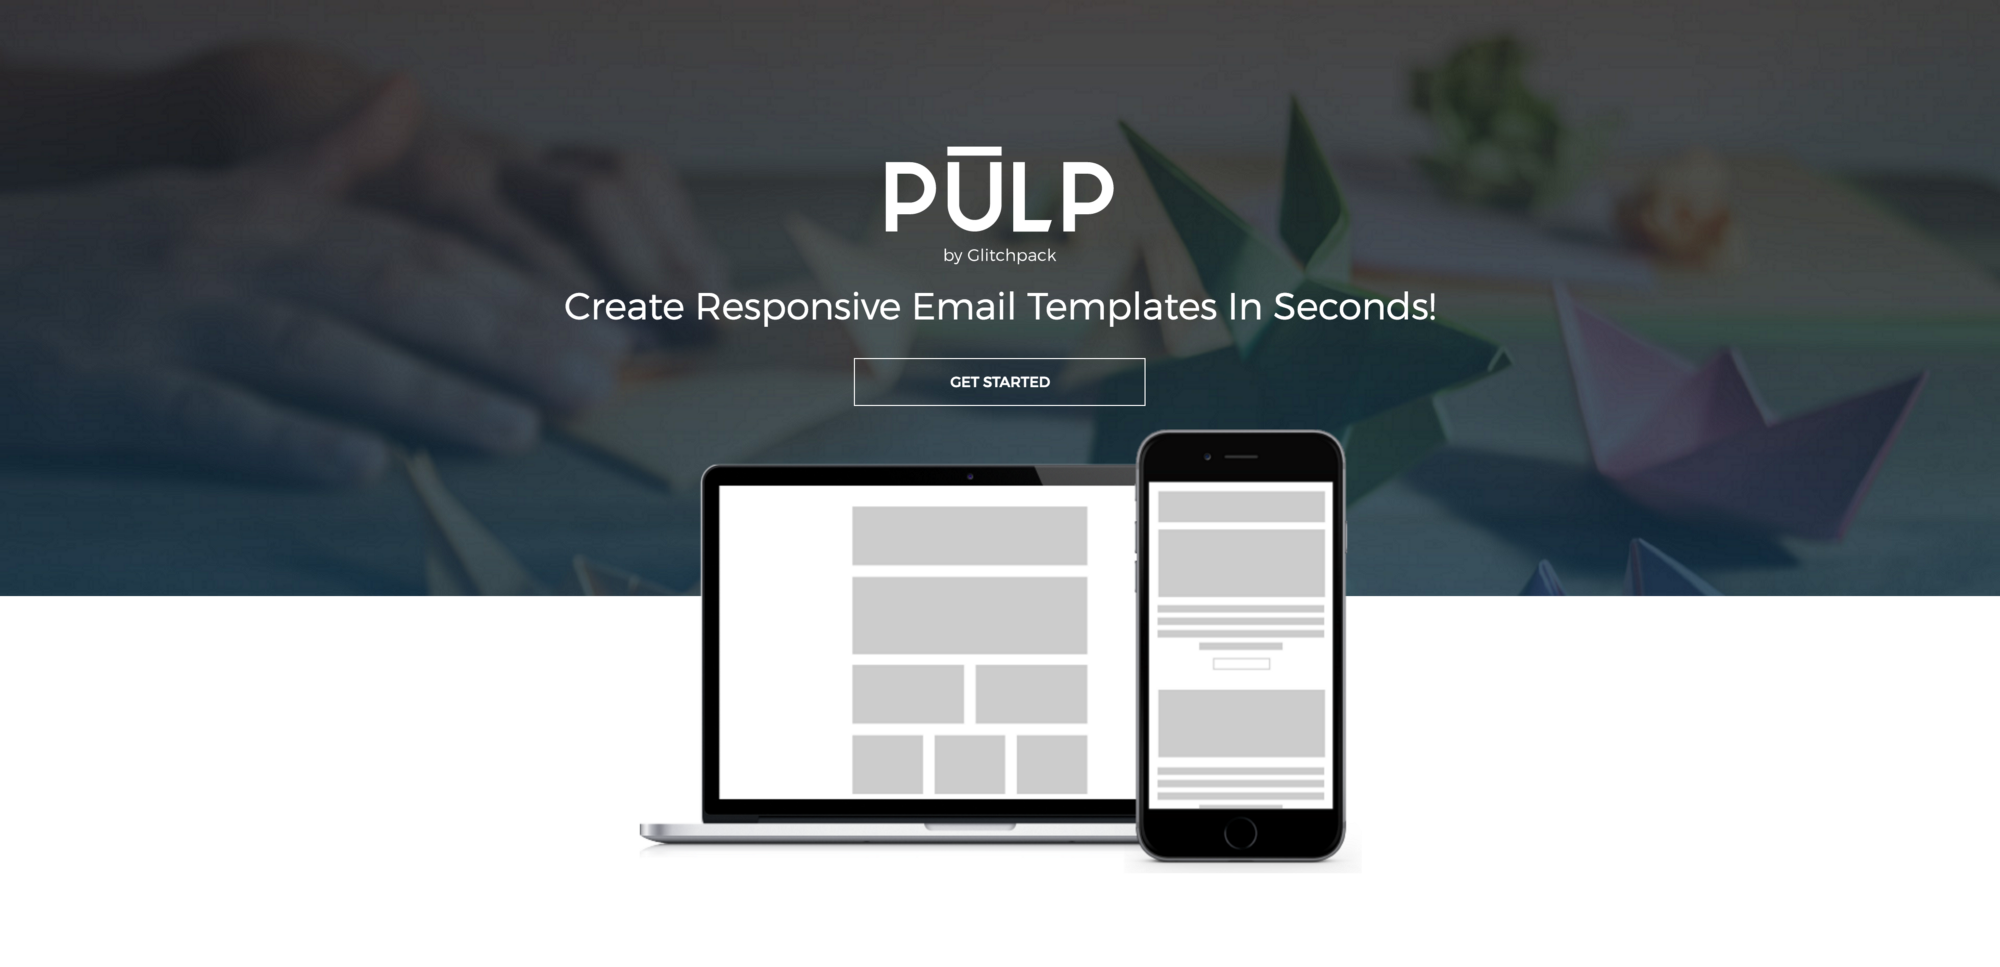 Pulp. Create Responsive Email Templates, In Seconds.